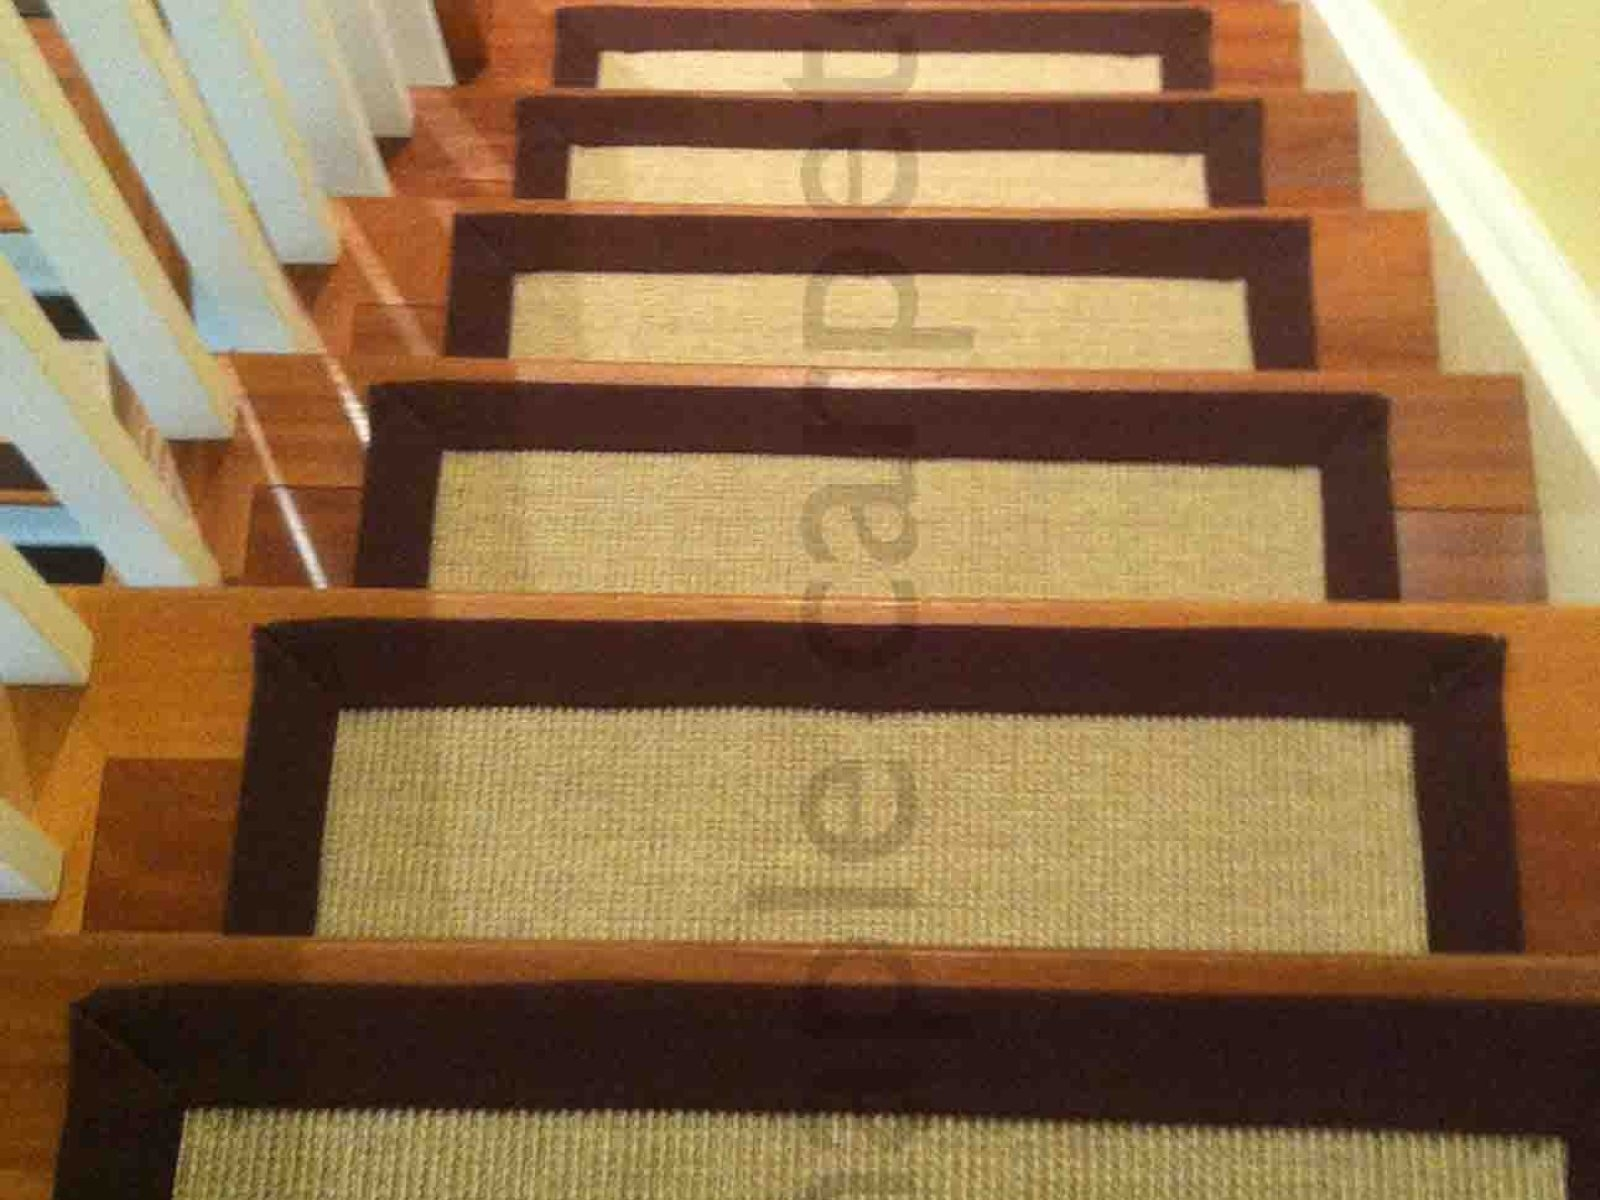 Stair Step Carpet Treads 12000 Carpet Cleaners In Removable Carpet Stair Treads (#17 of 20)